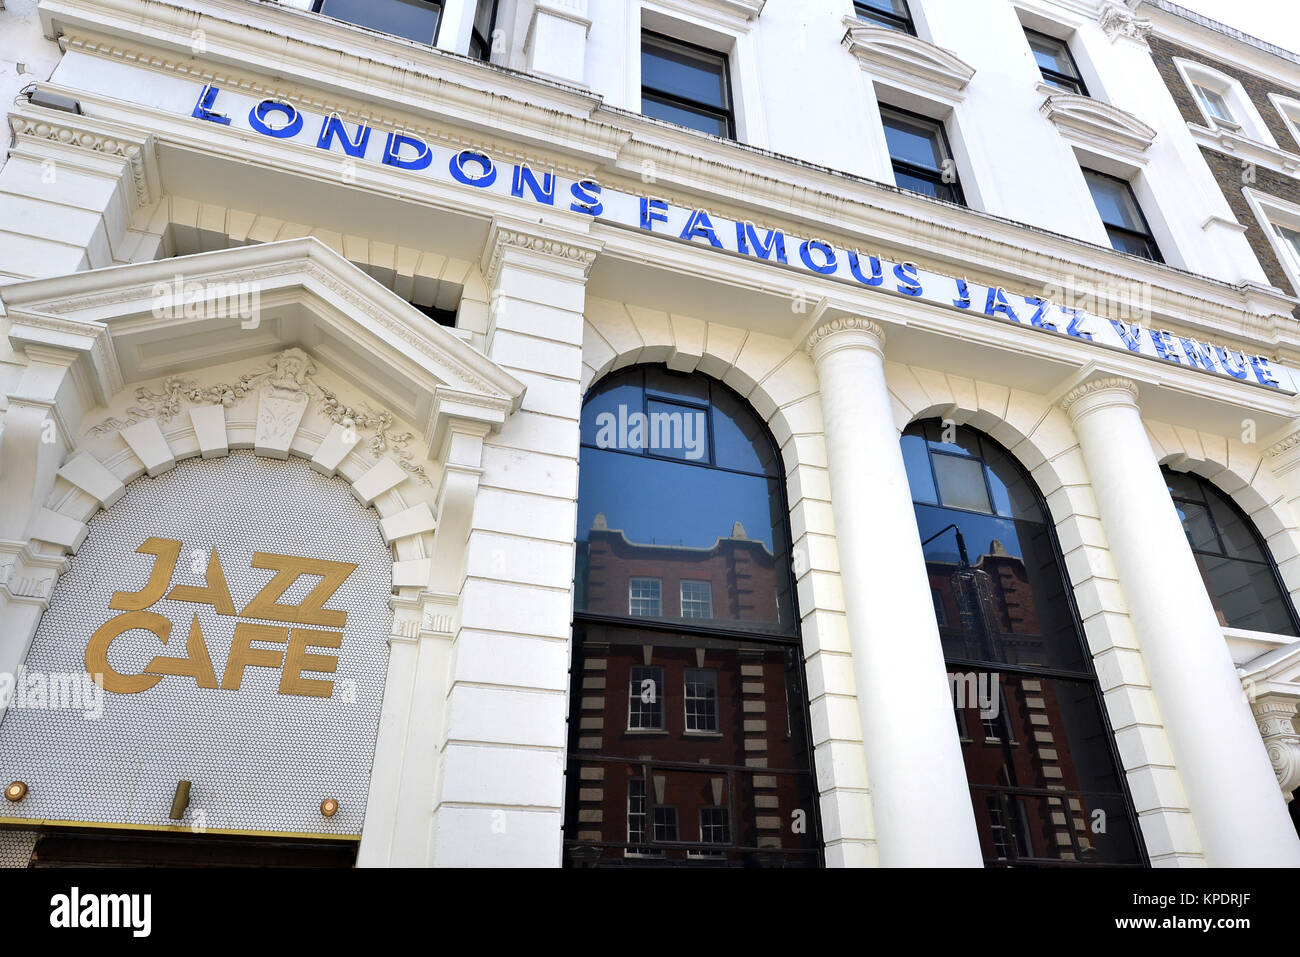 London Live Music Venue Stock Photos & London Live Music Venue Stock ...